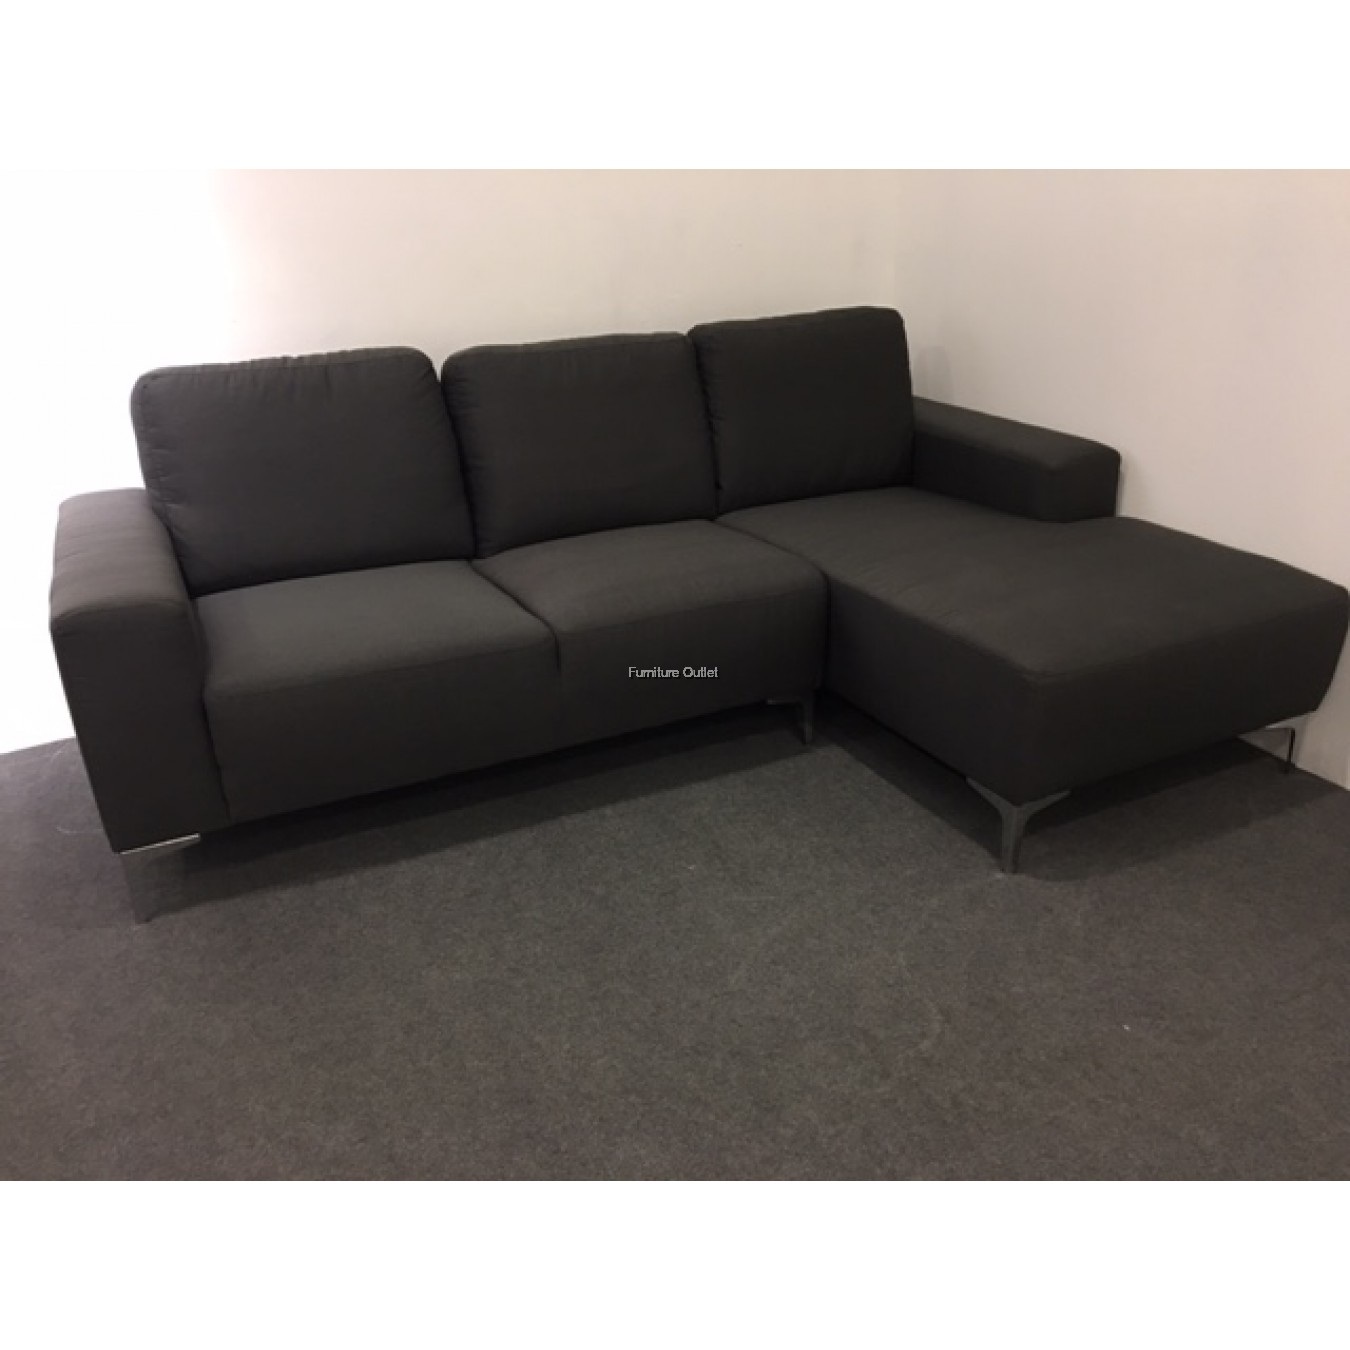 Milux L shape sofa - 3 seater